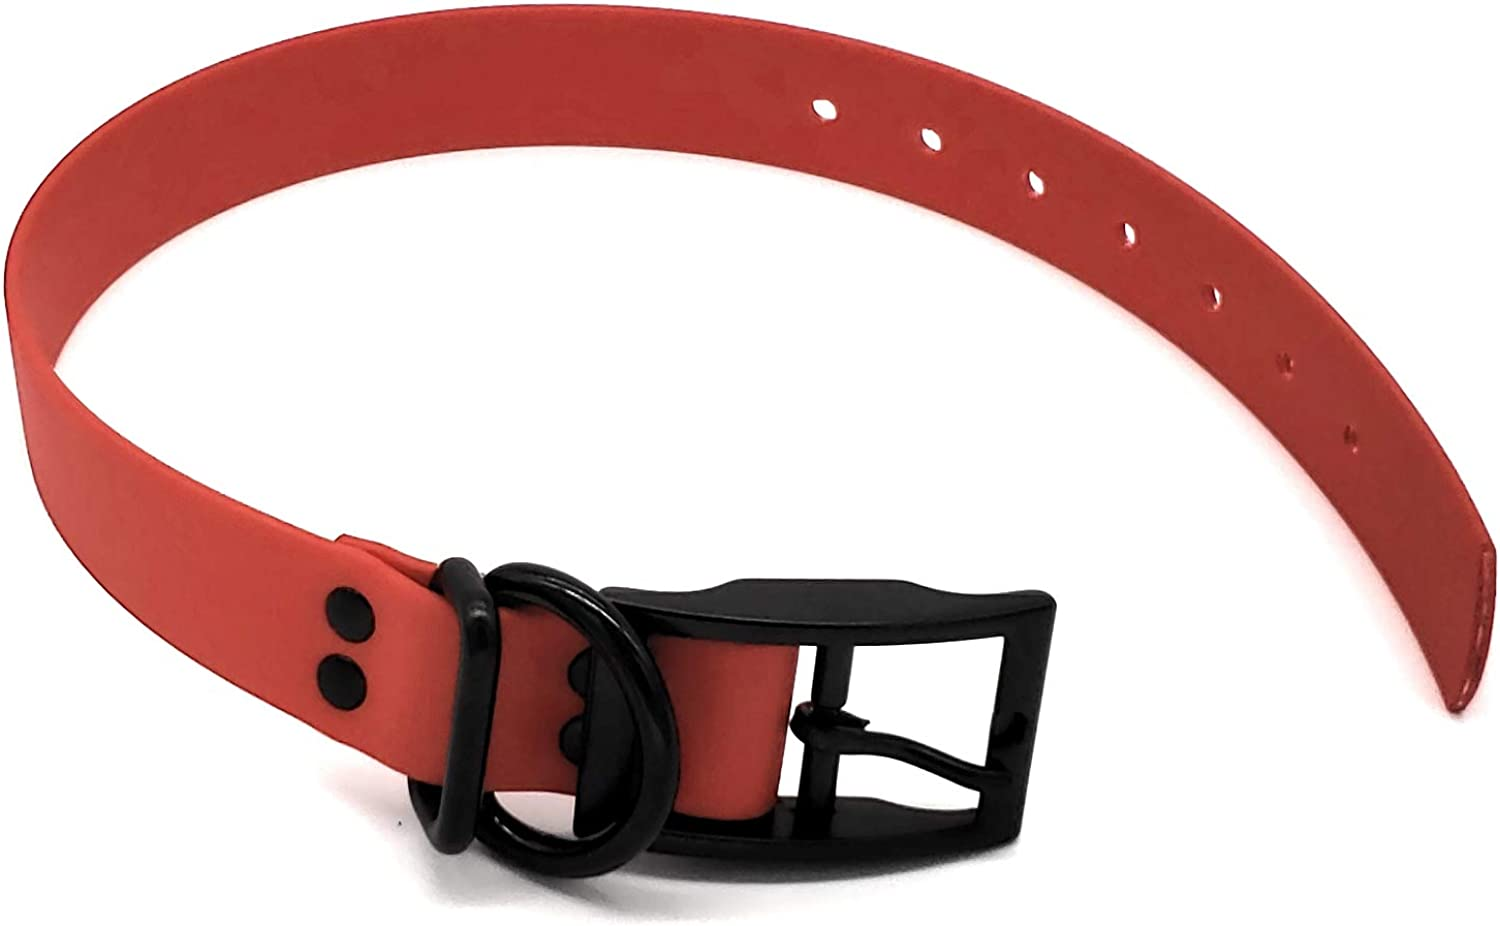 S,XS, and Tiny Biothane Dog Collars, Dog Collar, Buy a Collar Help a Veteran. Weather and Waterproof Puppy and Dog Collar with Black Hardware for Small and Tiny Dogs (Tiny(7.259.25inches), Red)